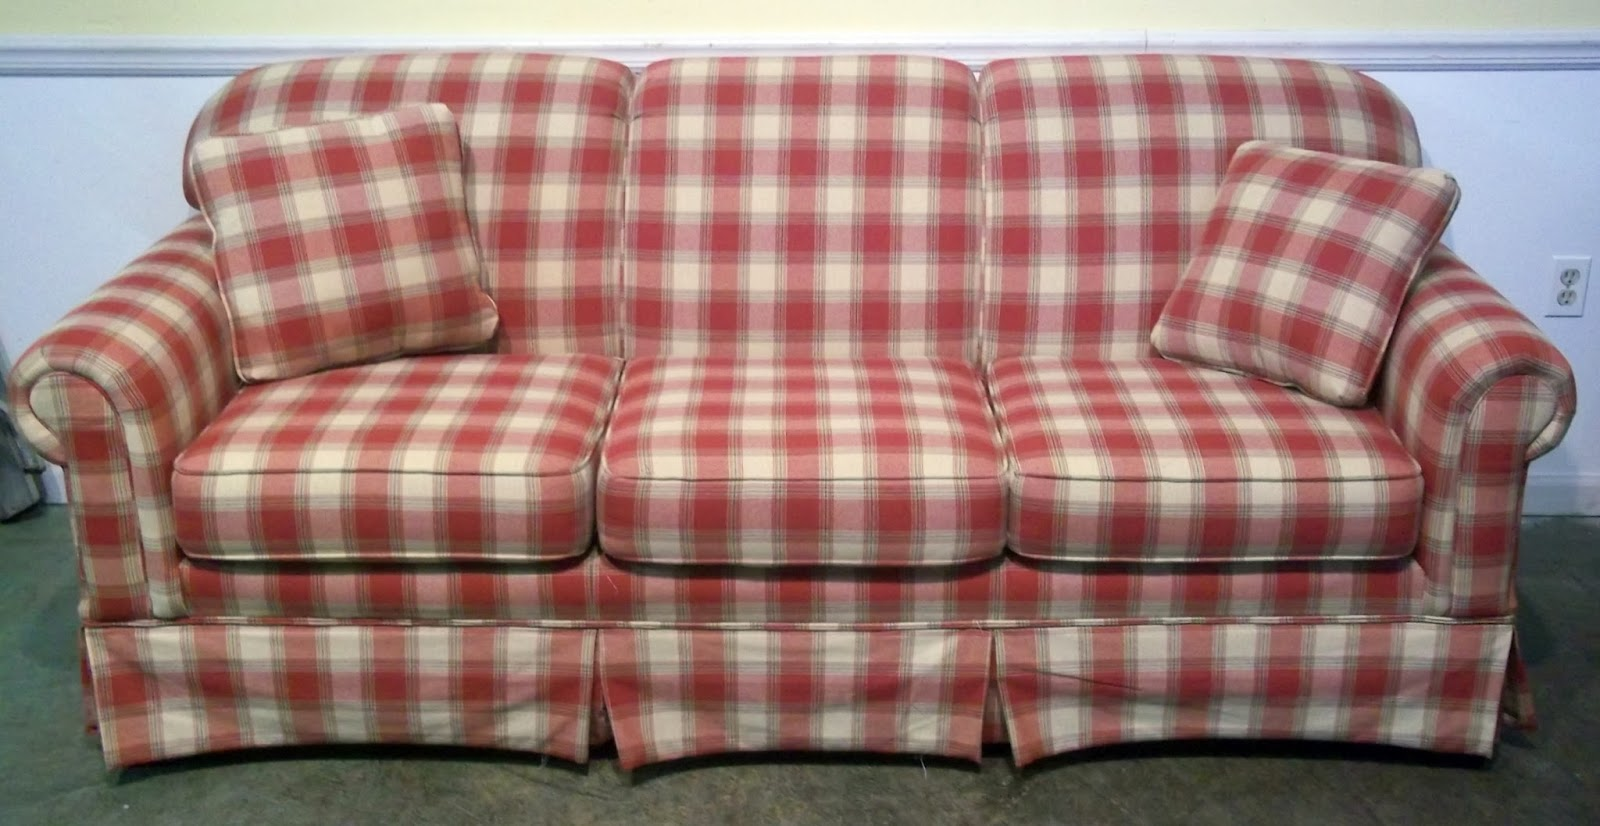 Plaid Tagesdecke Sofa Plaids Decken Tagesdecke Bett Berwurf Decke Plaid